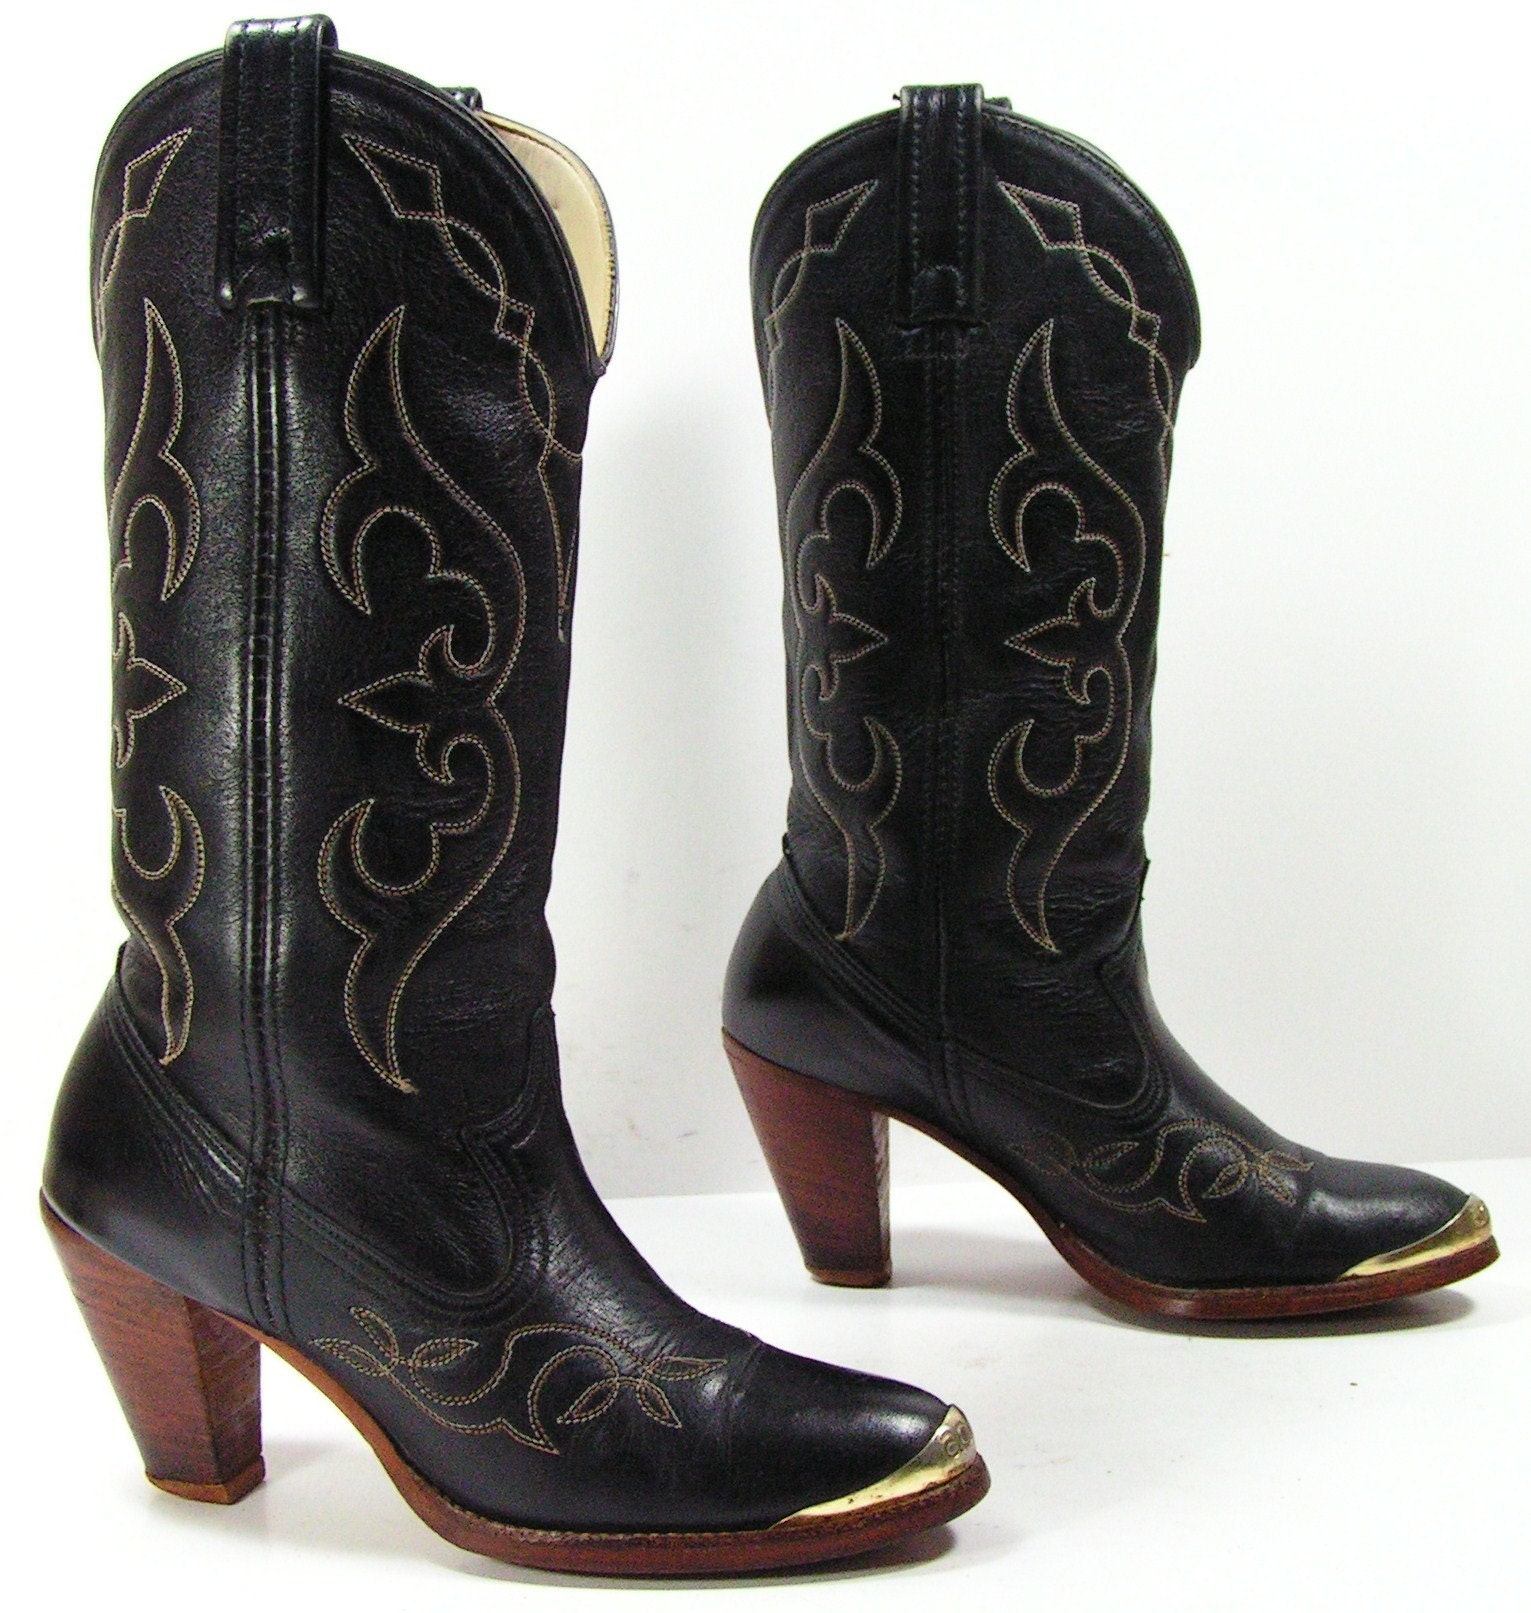 High Heel Cowboy Boots - Cr Boot